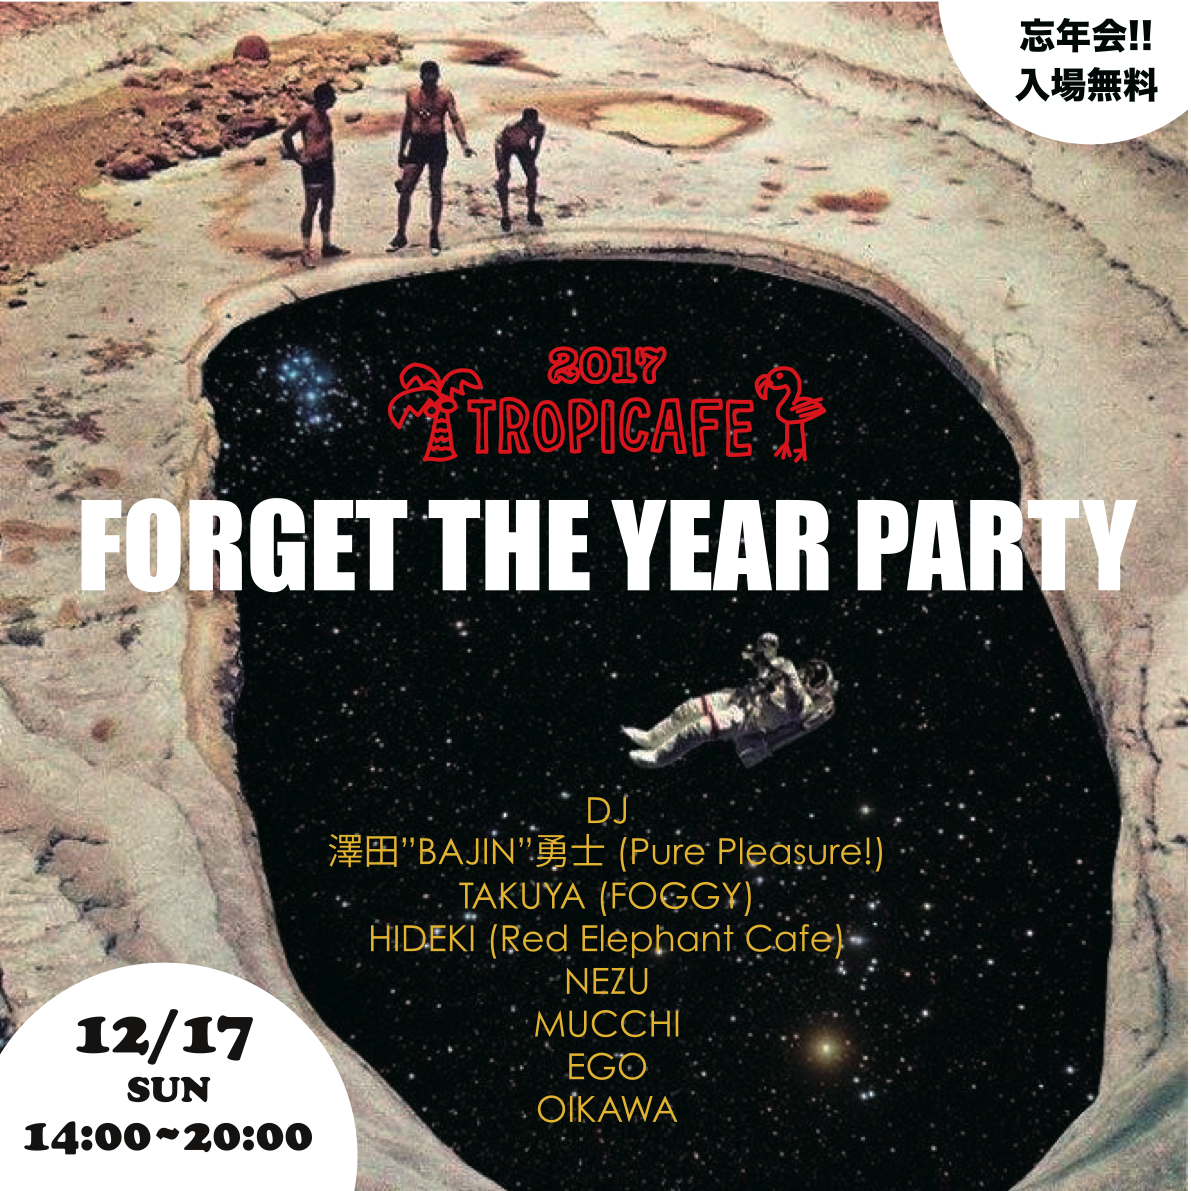 forgetyearparty111 コピー.jpg